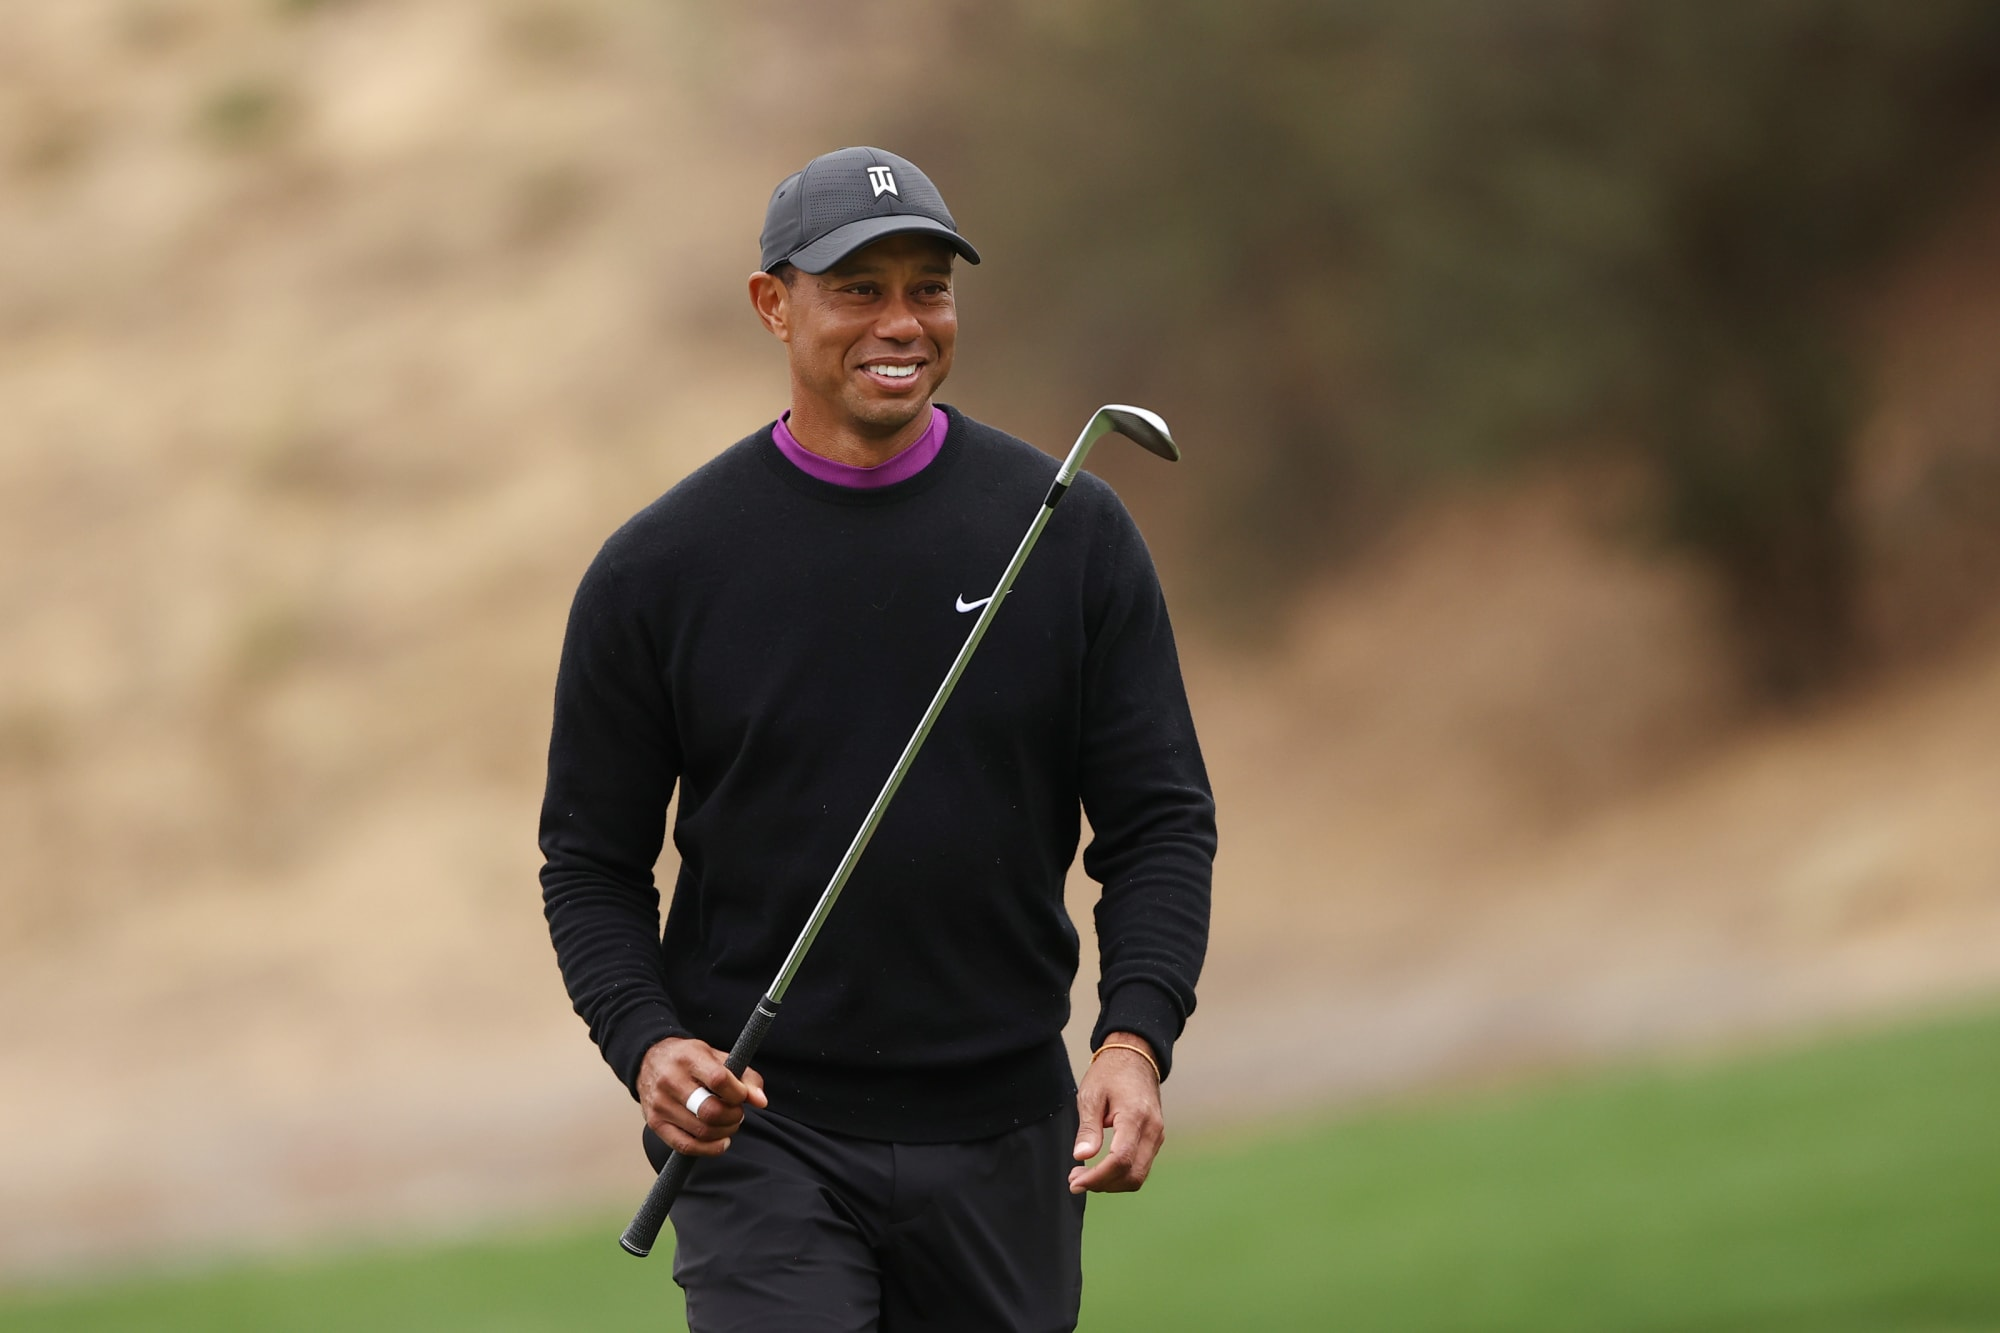 Zozo Championship: Tiger Woods shows signs on Friday